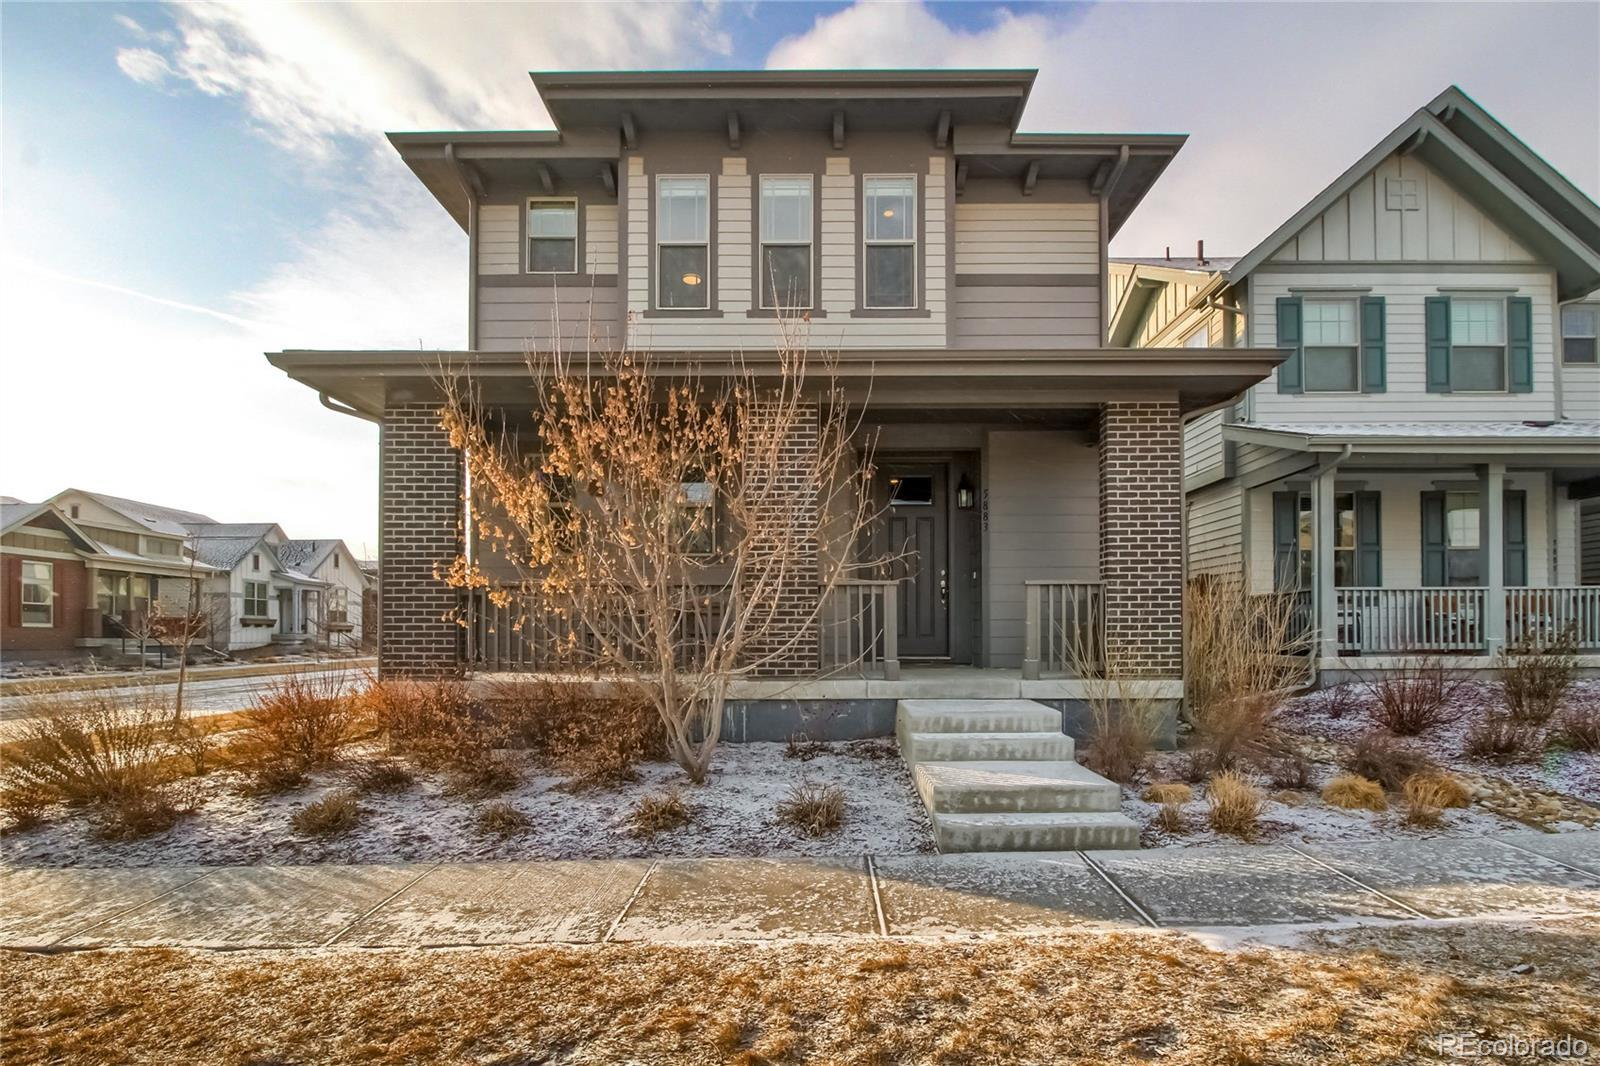 5883 Alton Street, Denver, CO 80238 - #: 2505627